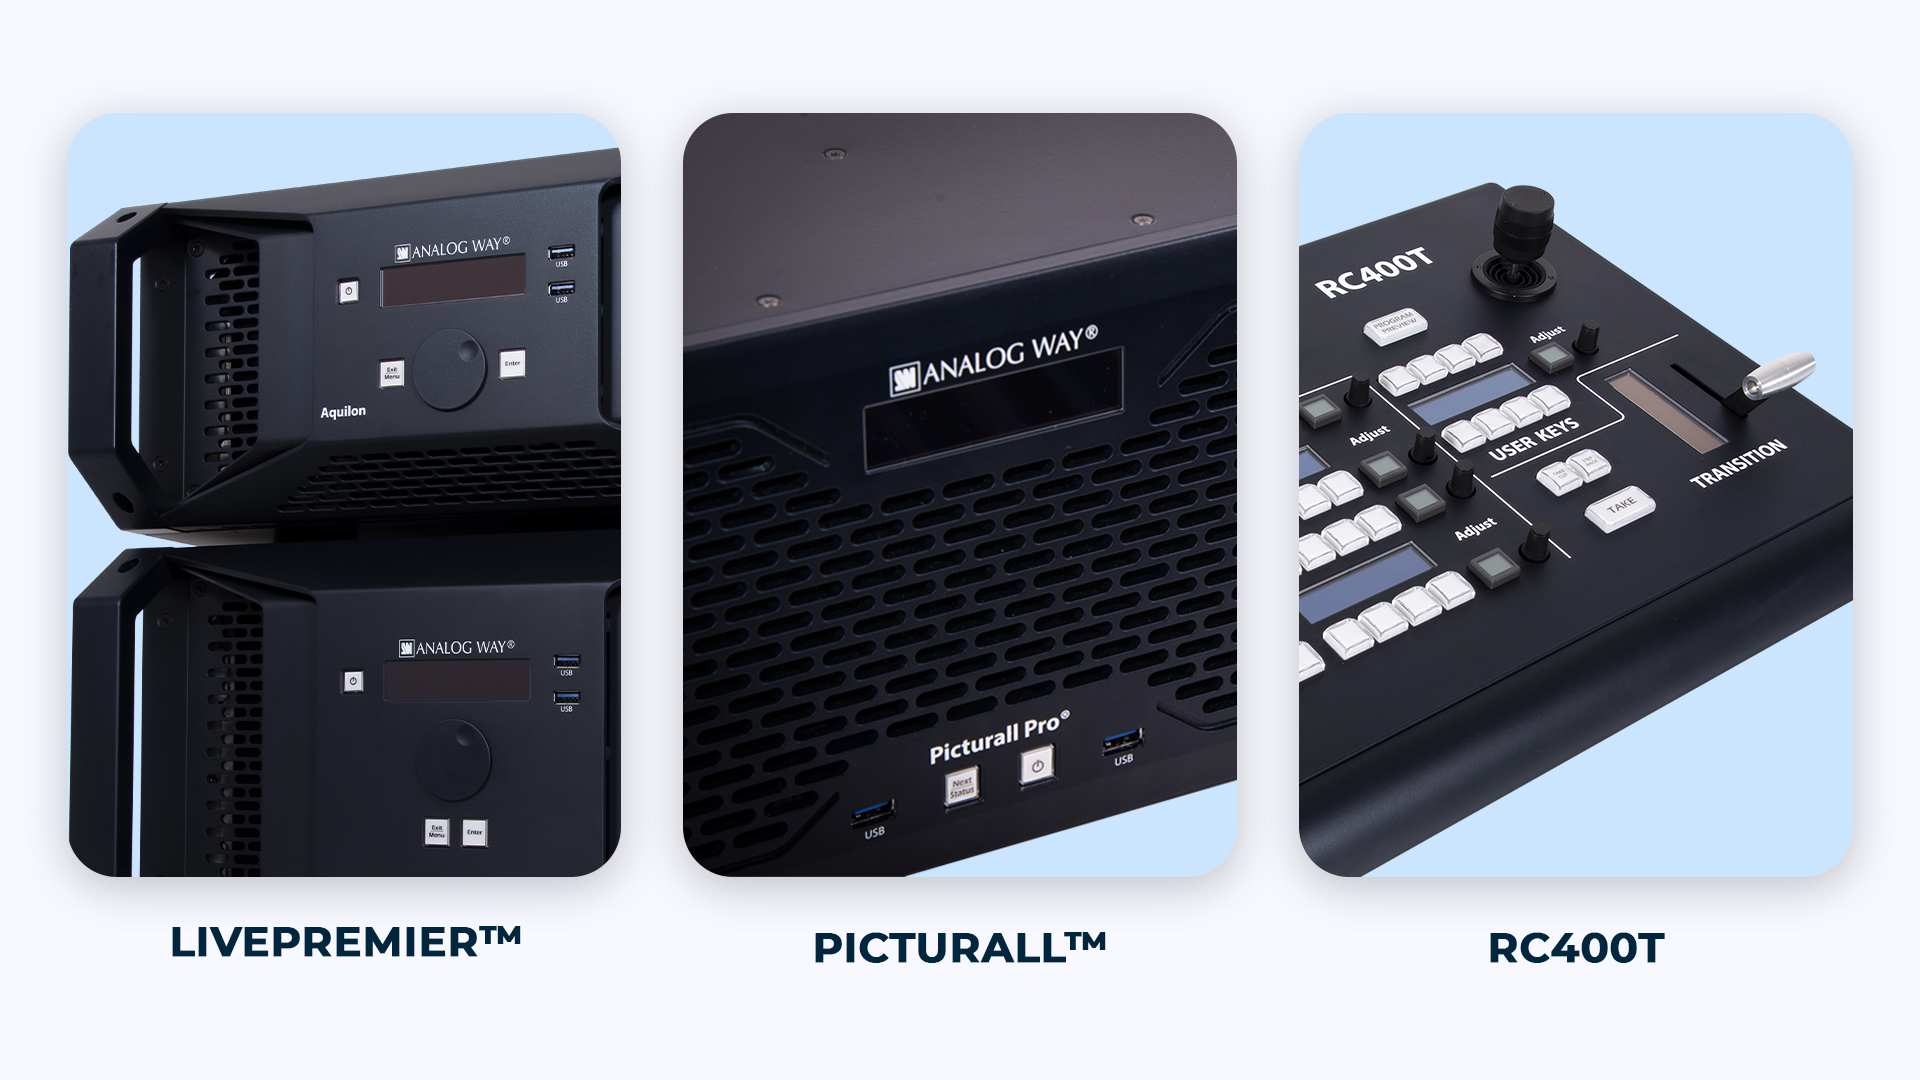 AnalogWay_Announces_Major_Software_Upgrades_And_New_Event_Controller_at_ISE2020.jpg